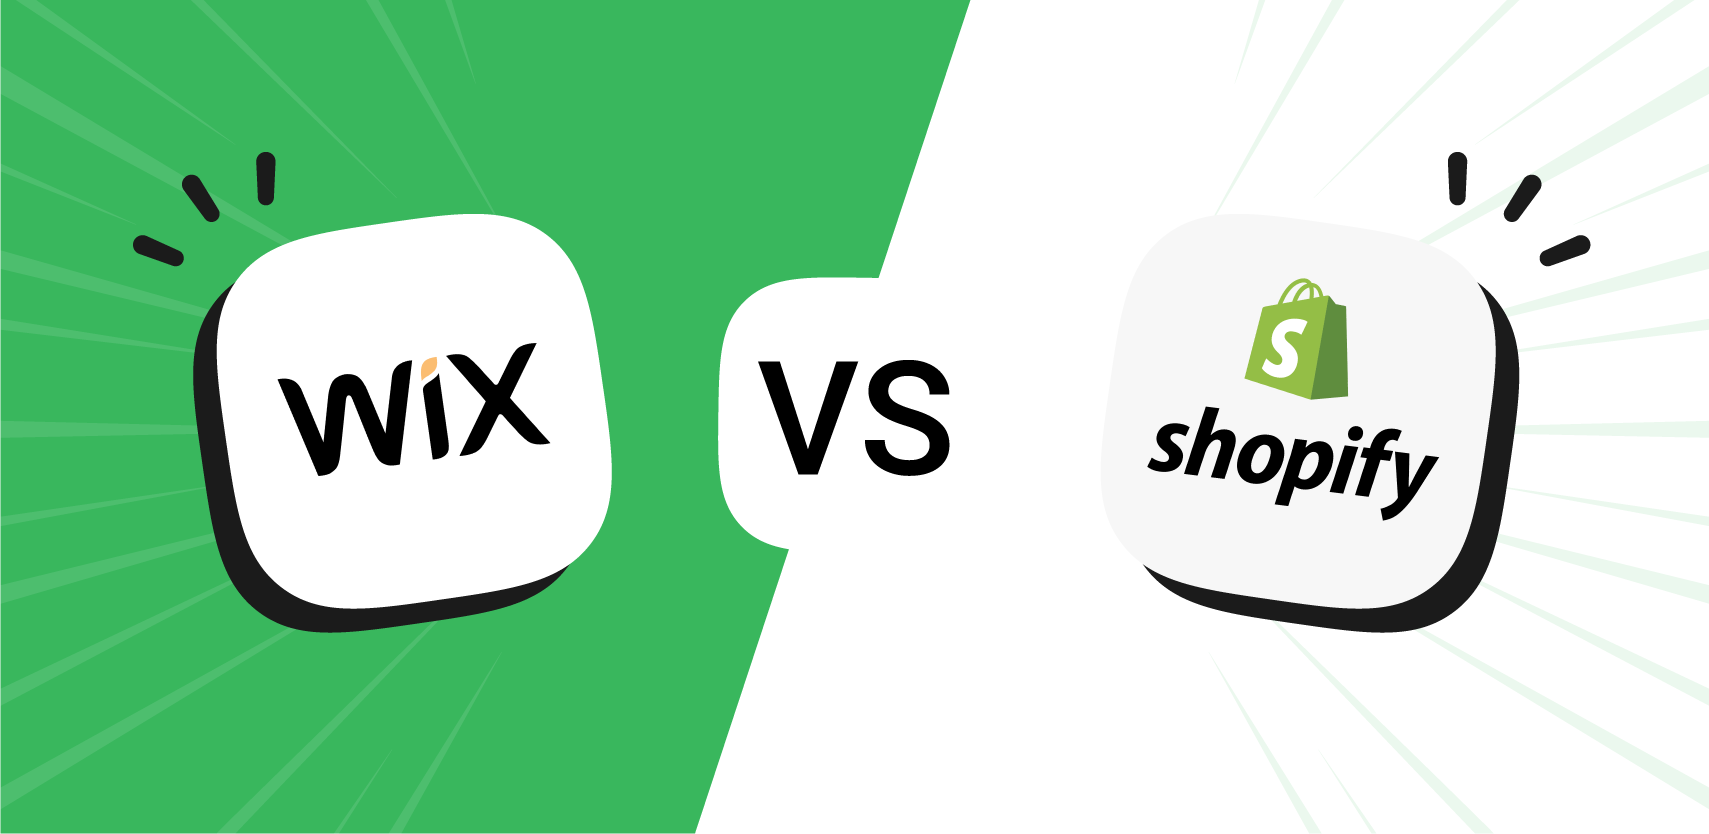 Wix vs Shopify: Which platform is better for you?